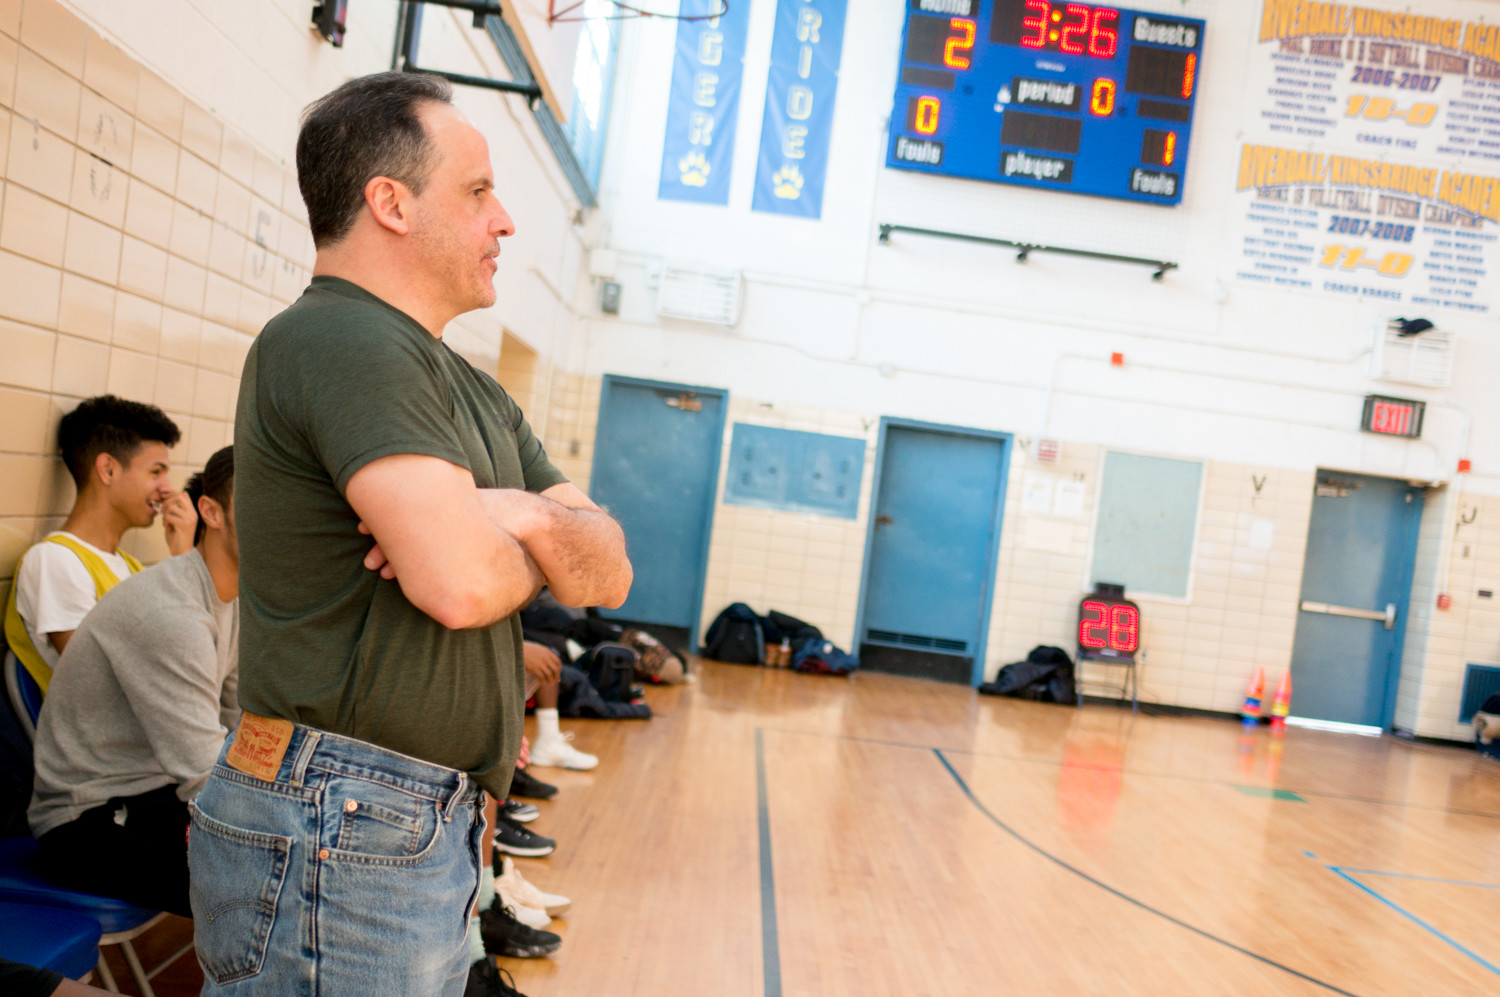 The gymnasium at Riverdale/Kingsbridge Academy has become a second home for John Reingold, who coaches three varsity sports at the school.